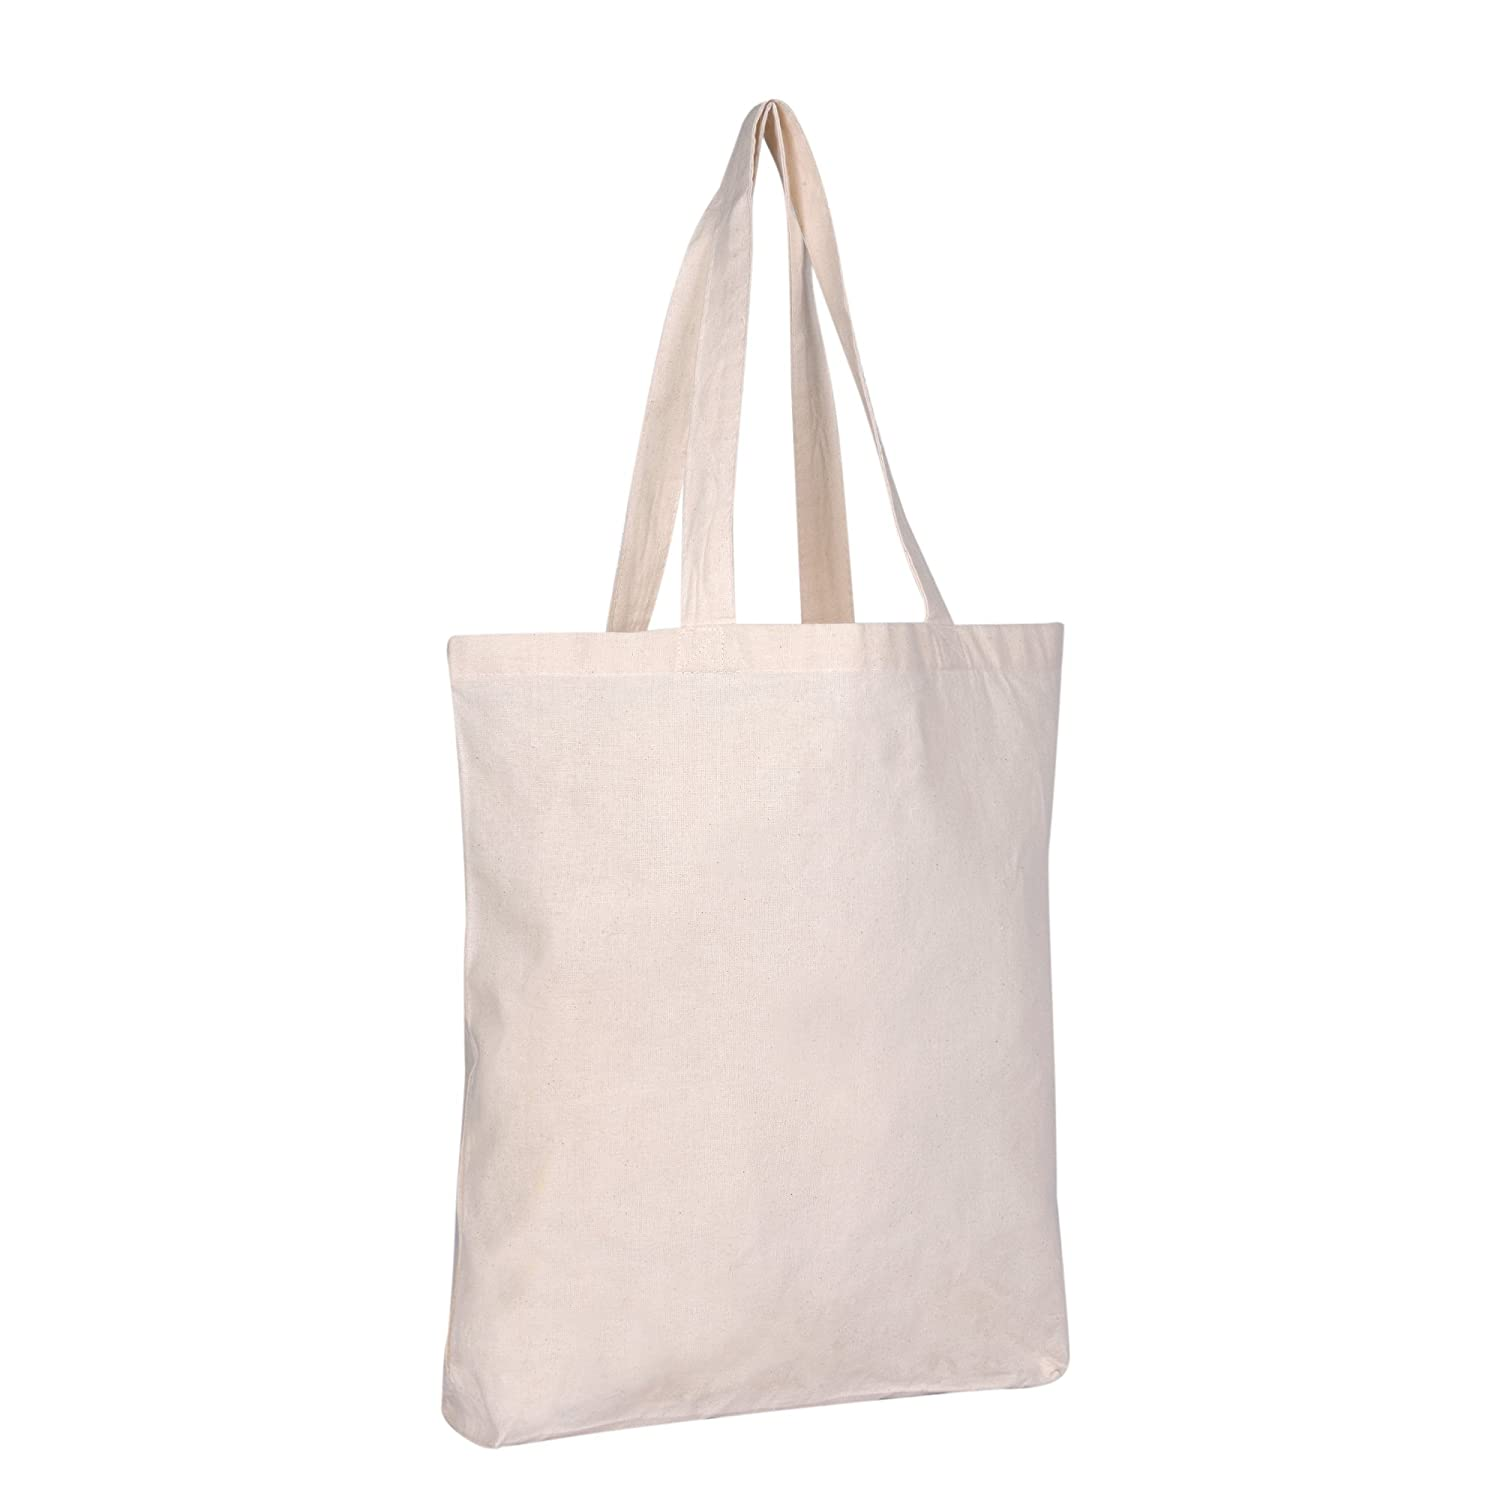 a508d14e4d49 Amazon.com  Set of 50 - Wholesale 100% Natural Cotton Plain Tote Bags